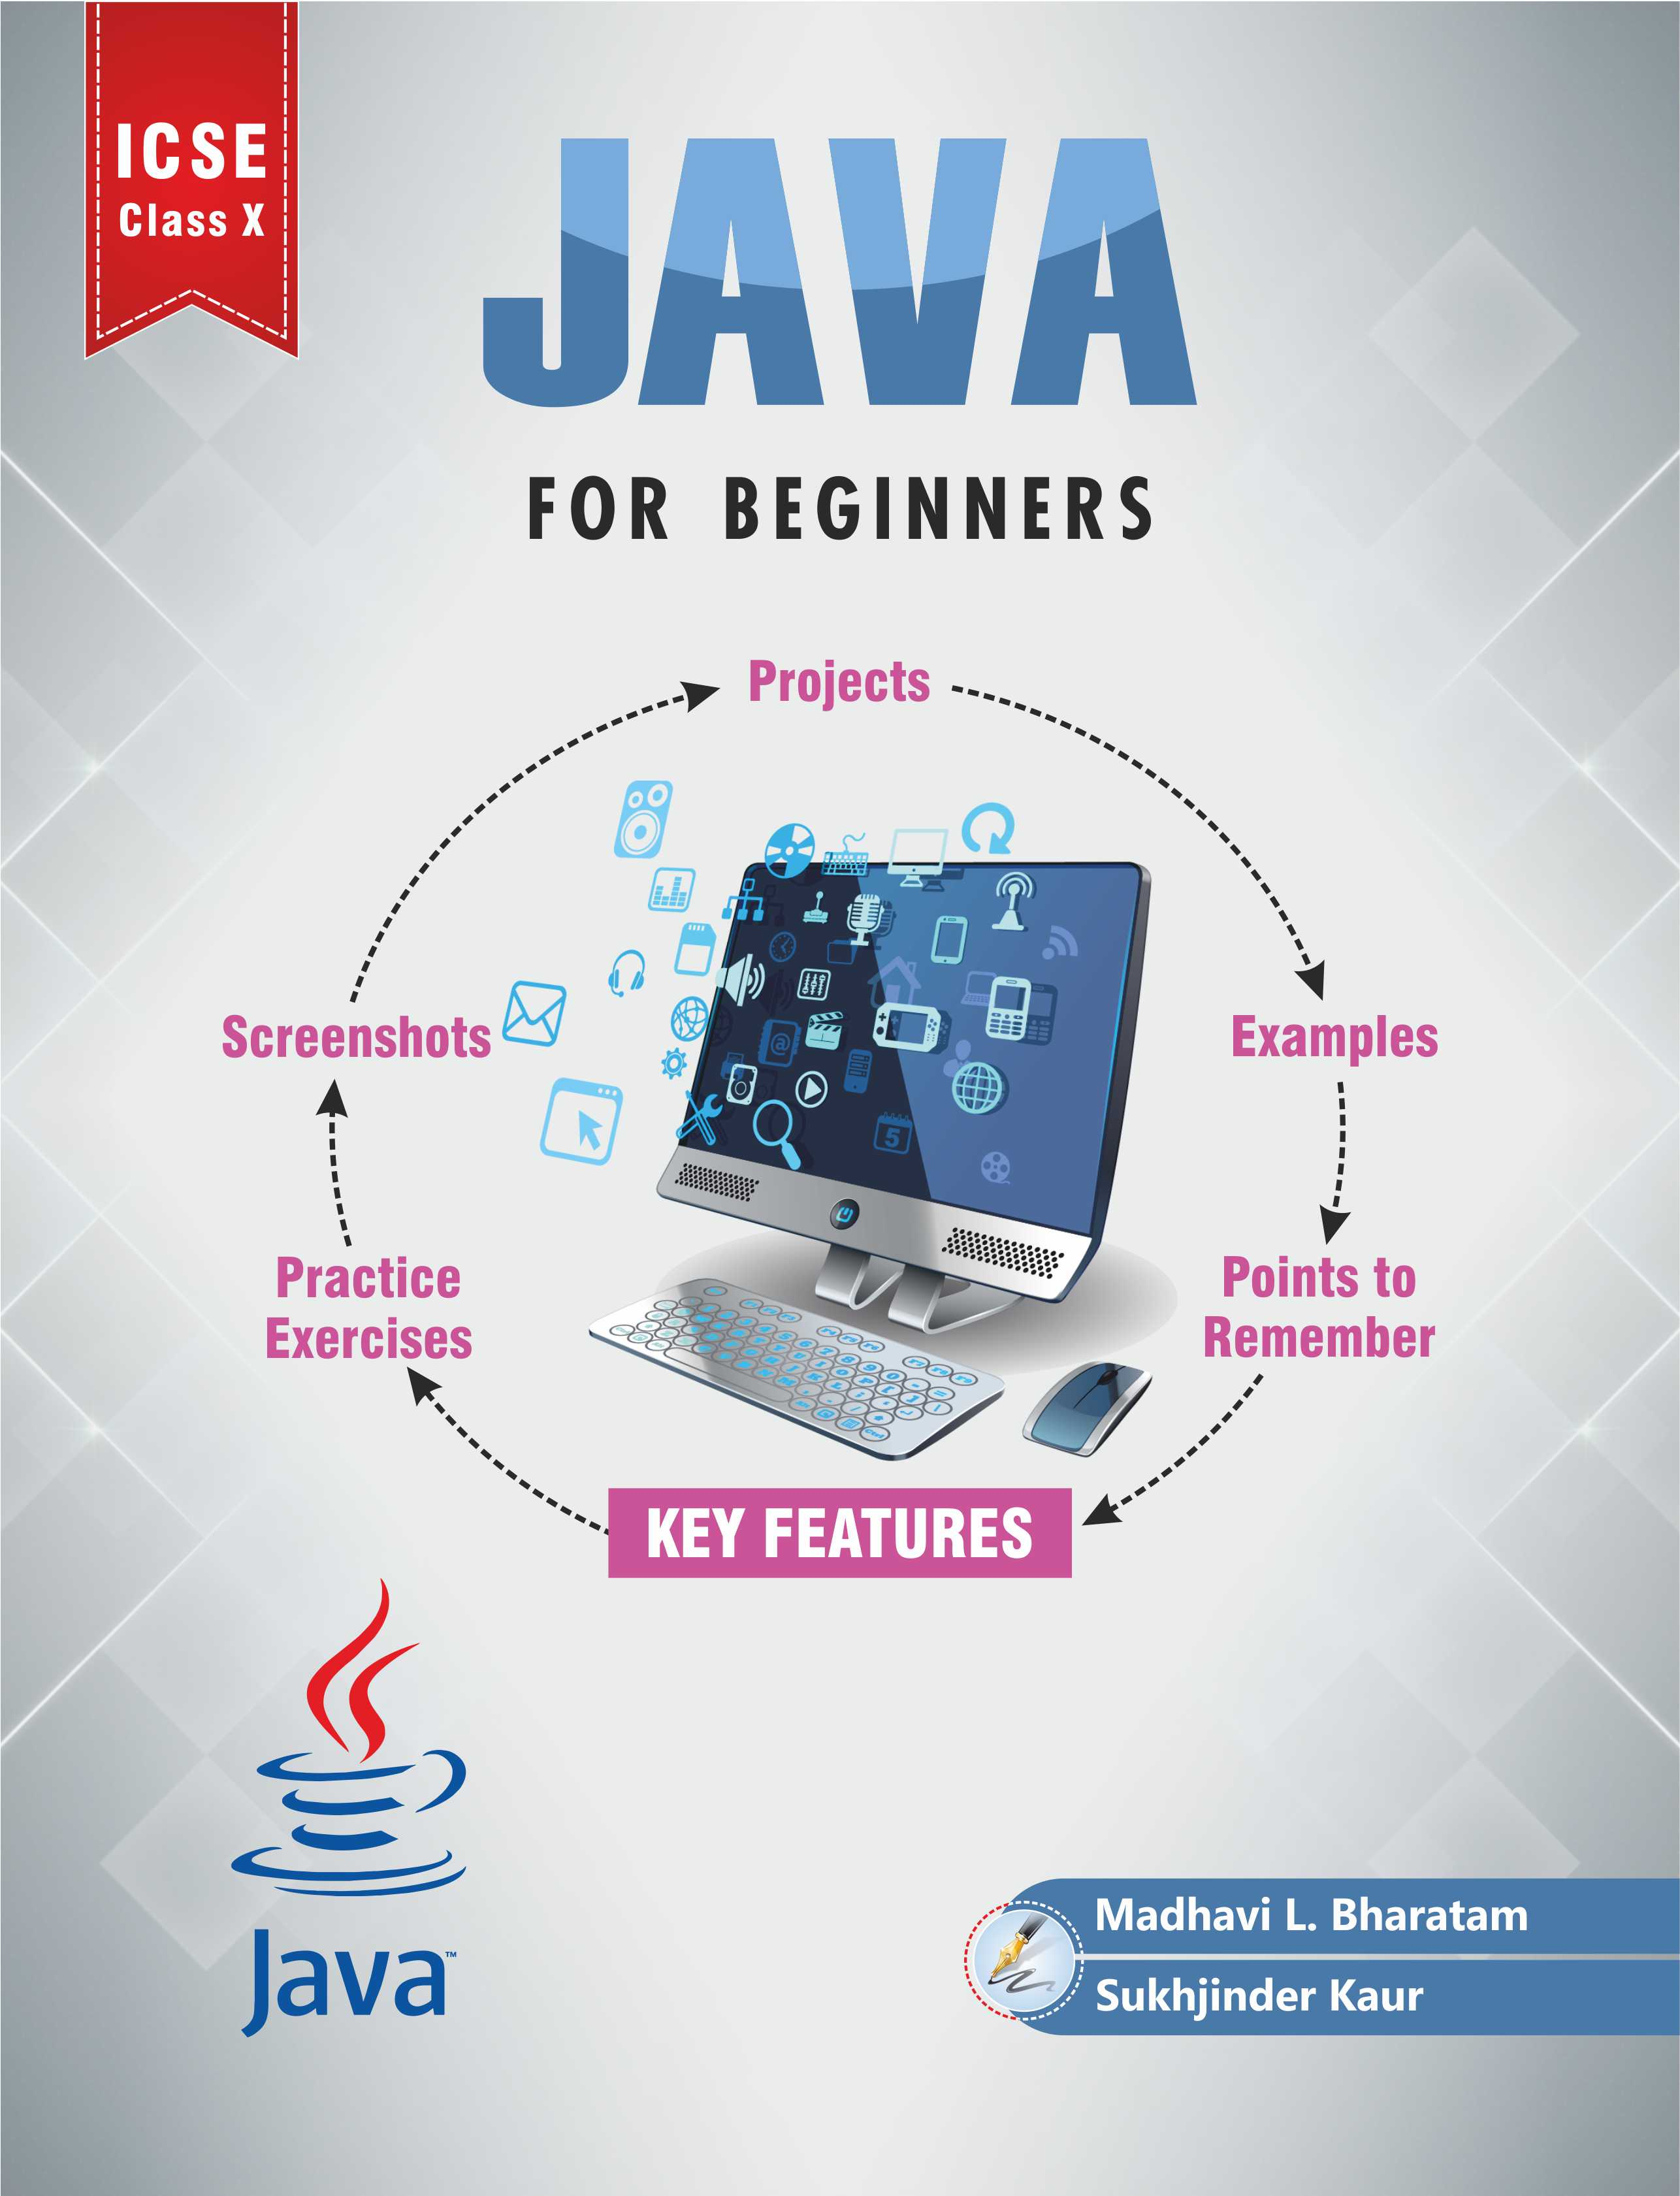 Java For Beginners by Madhavi L. Bharatam and Sukhjinder Kaur for ICSE class 9th and 10th